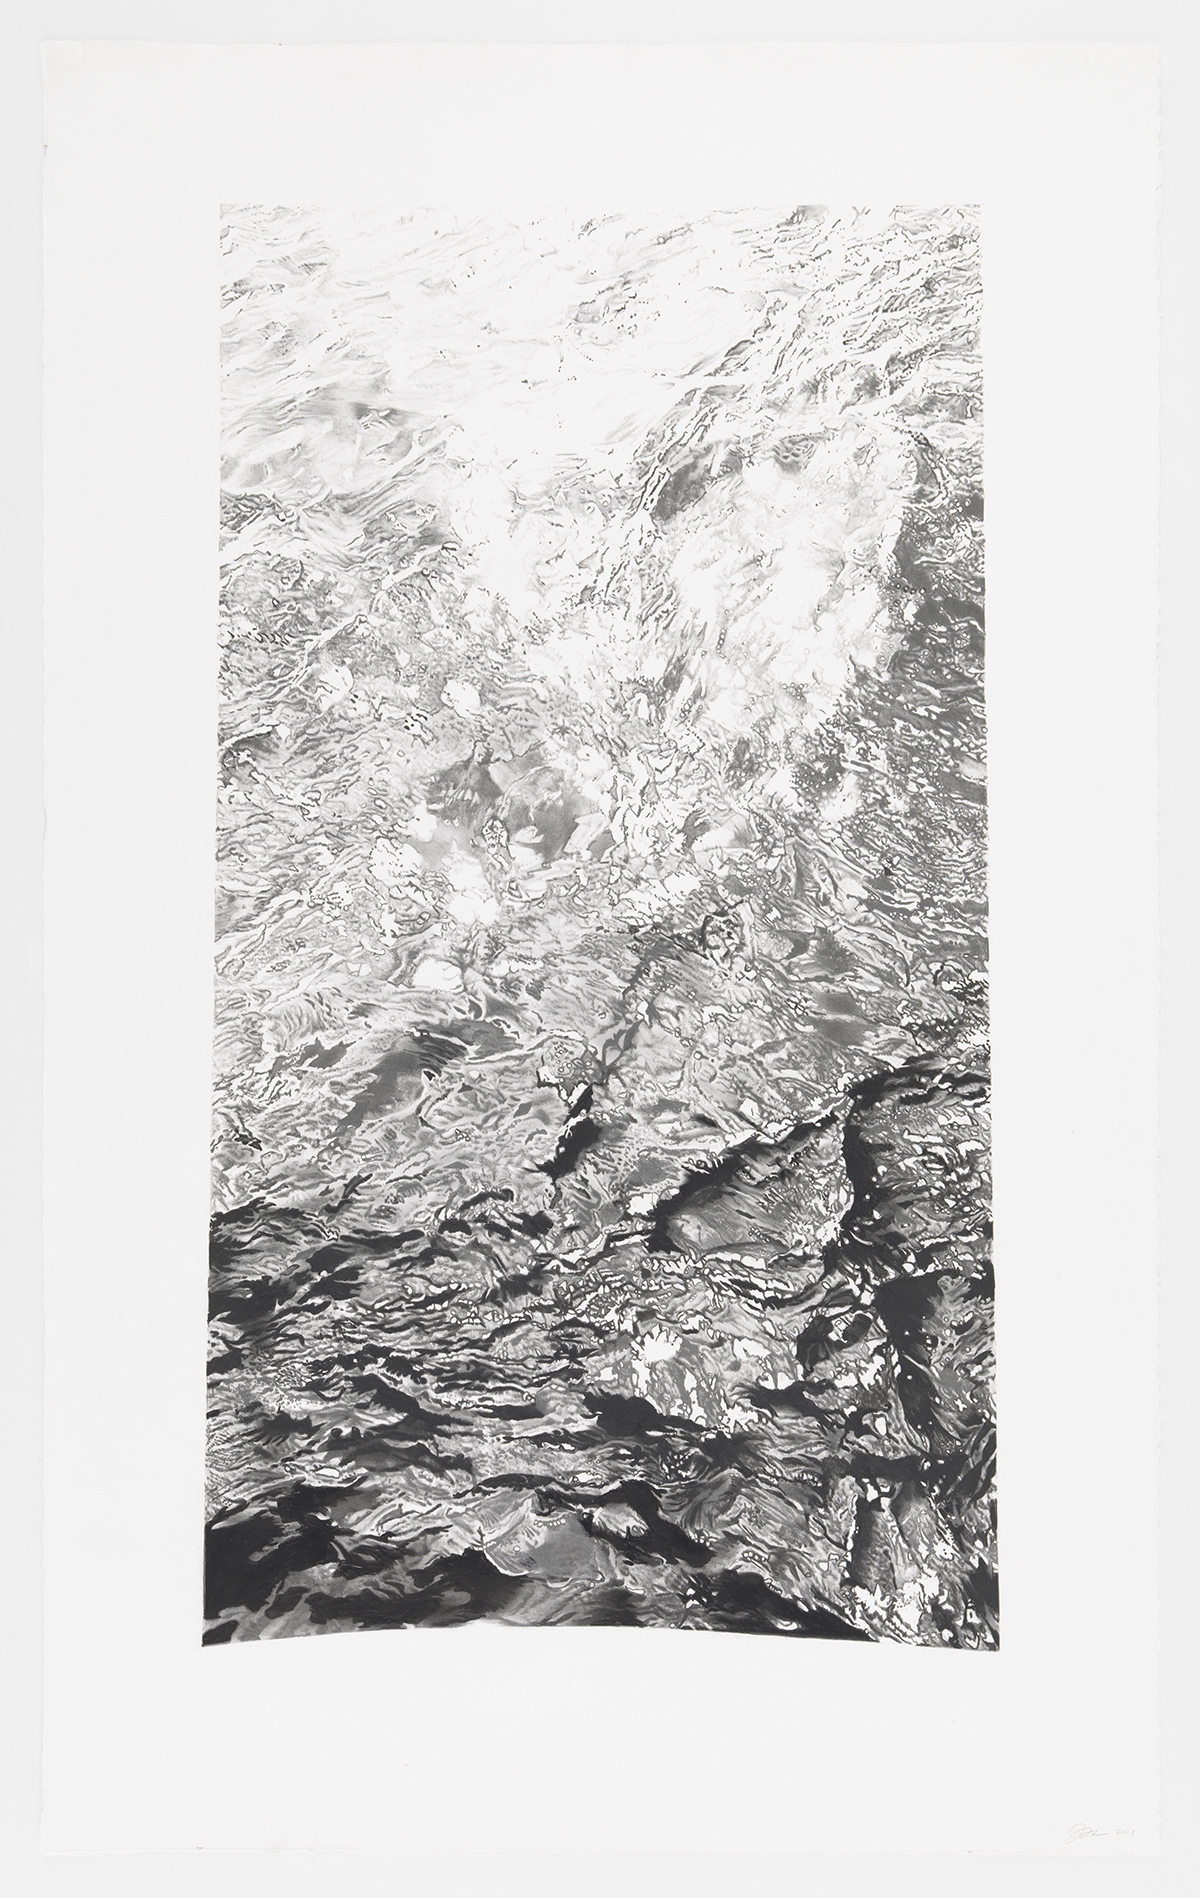 "Inverted Water 5 48.8566° N, 2.3522° E, charcoal on paper, 72"" x 42"", 2018"